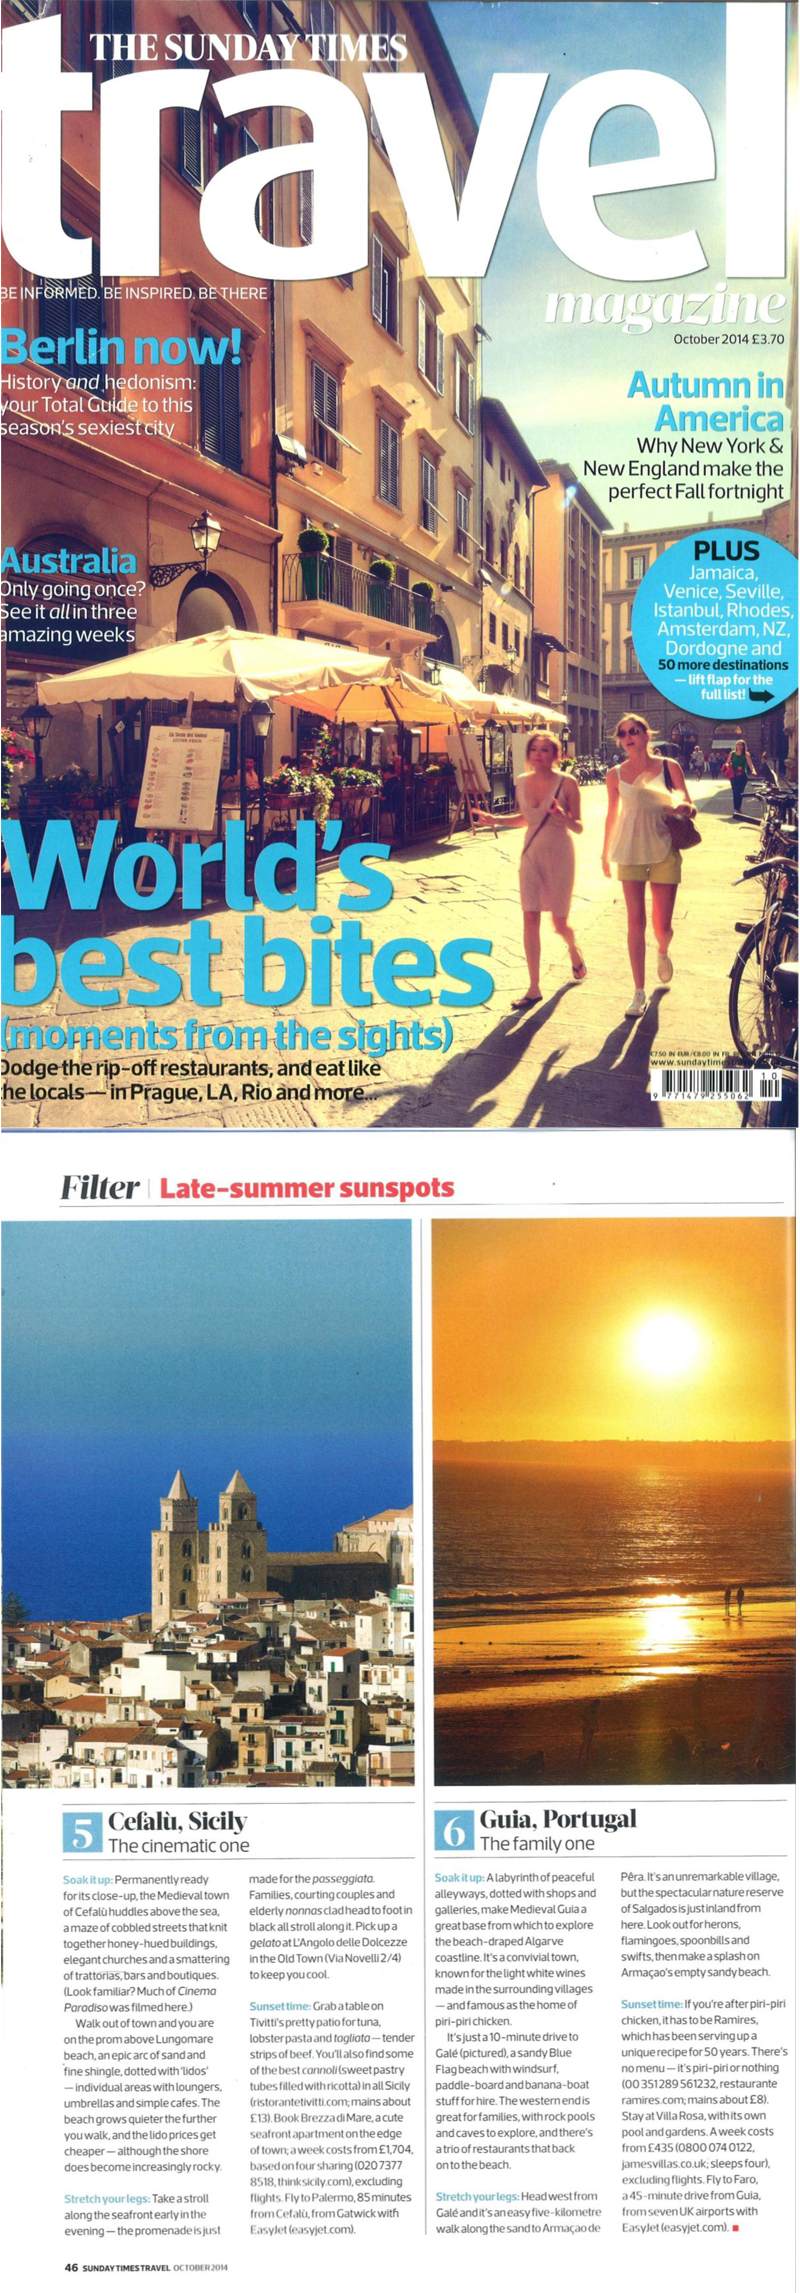 Sunday Times Travel Magazine, October 2014